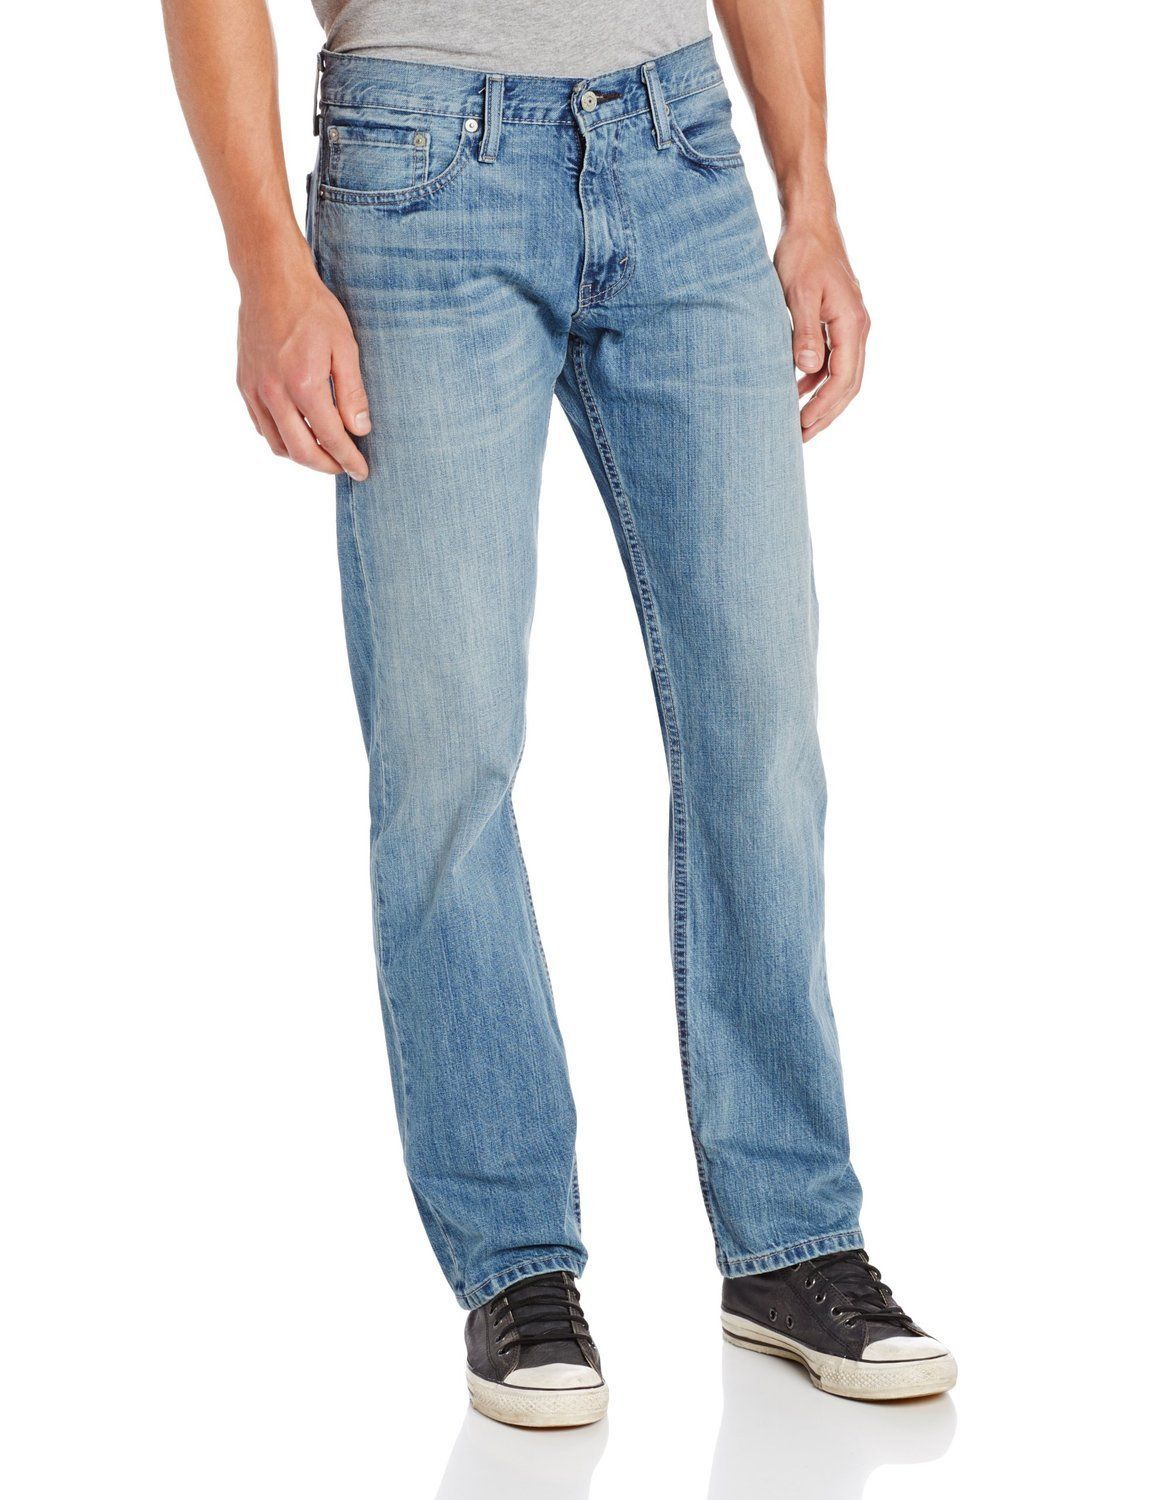 NEW LEVI'S STRAUSS 514 MEN'S COTTON ORIGINAL SLIM STRAIGHT LEG JEANS 514-0540